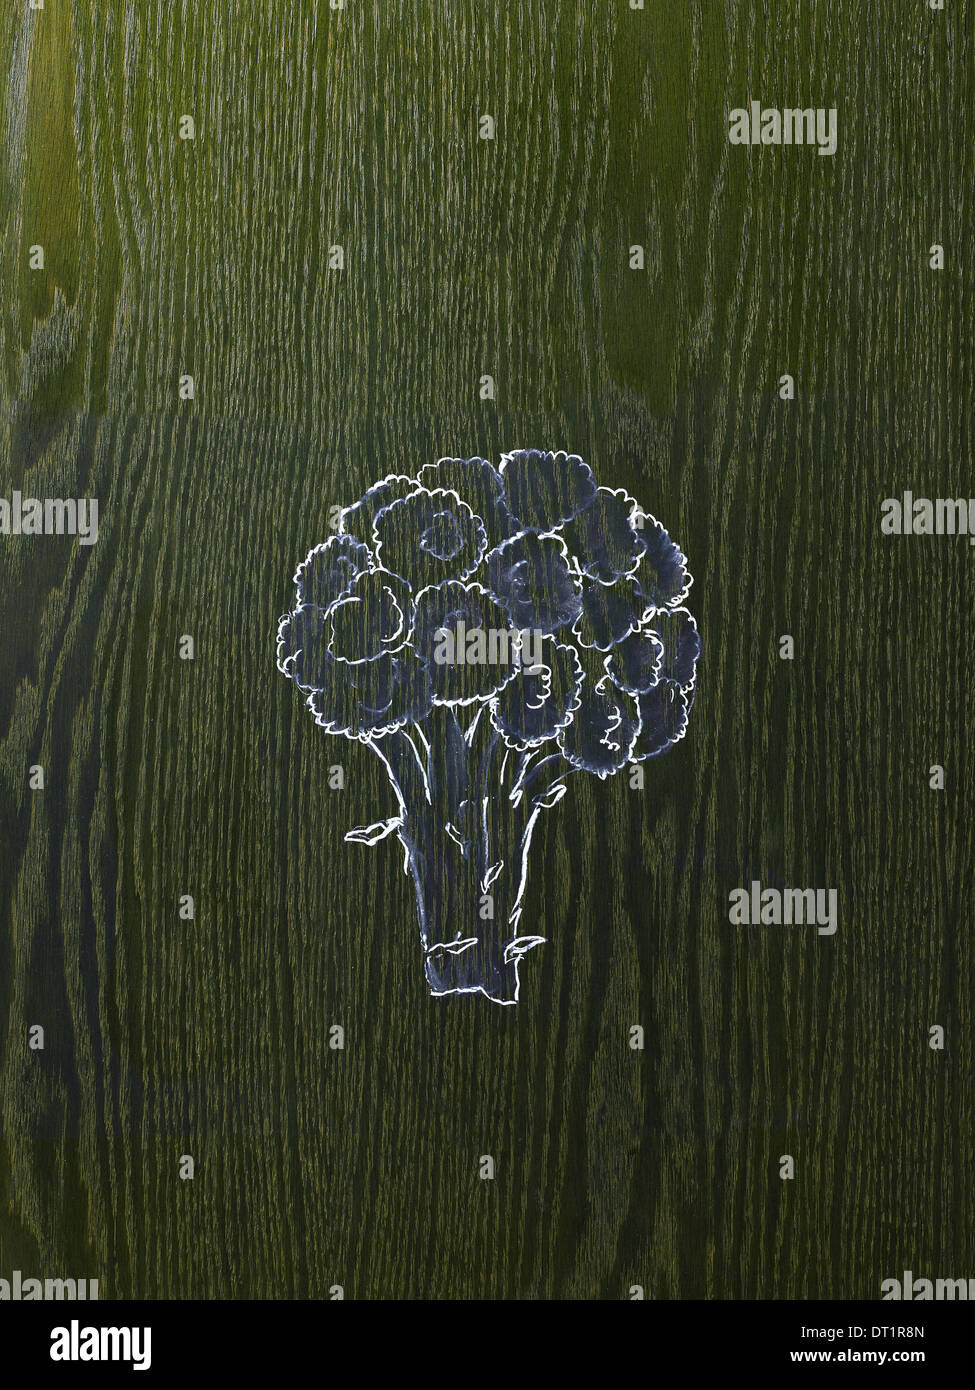 A line drawing image on a natural wood grain background A head of broccoli florets and stem - Stock Image